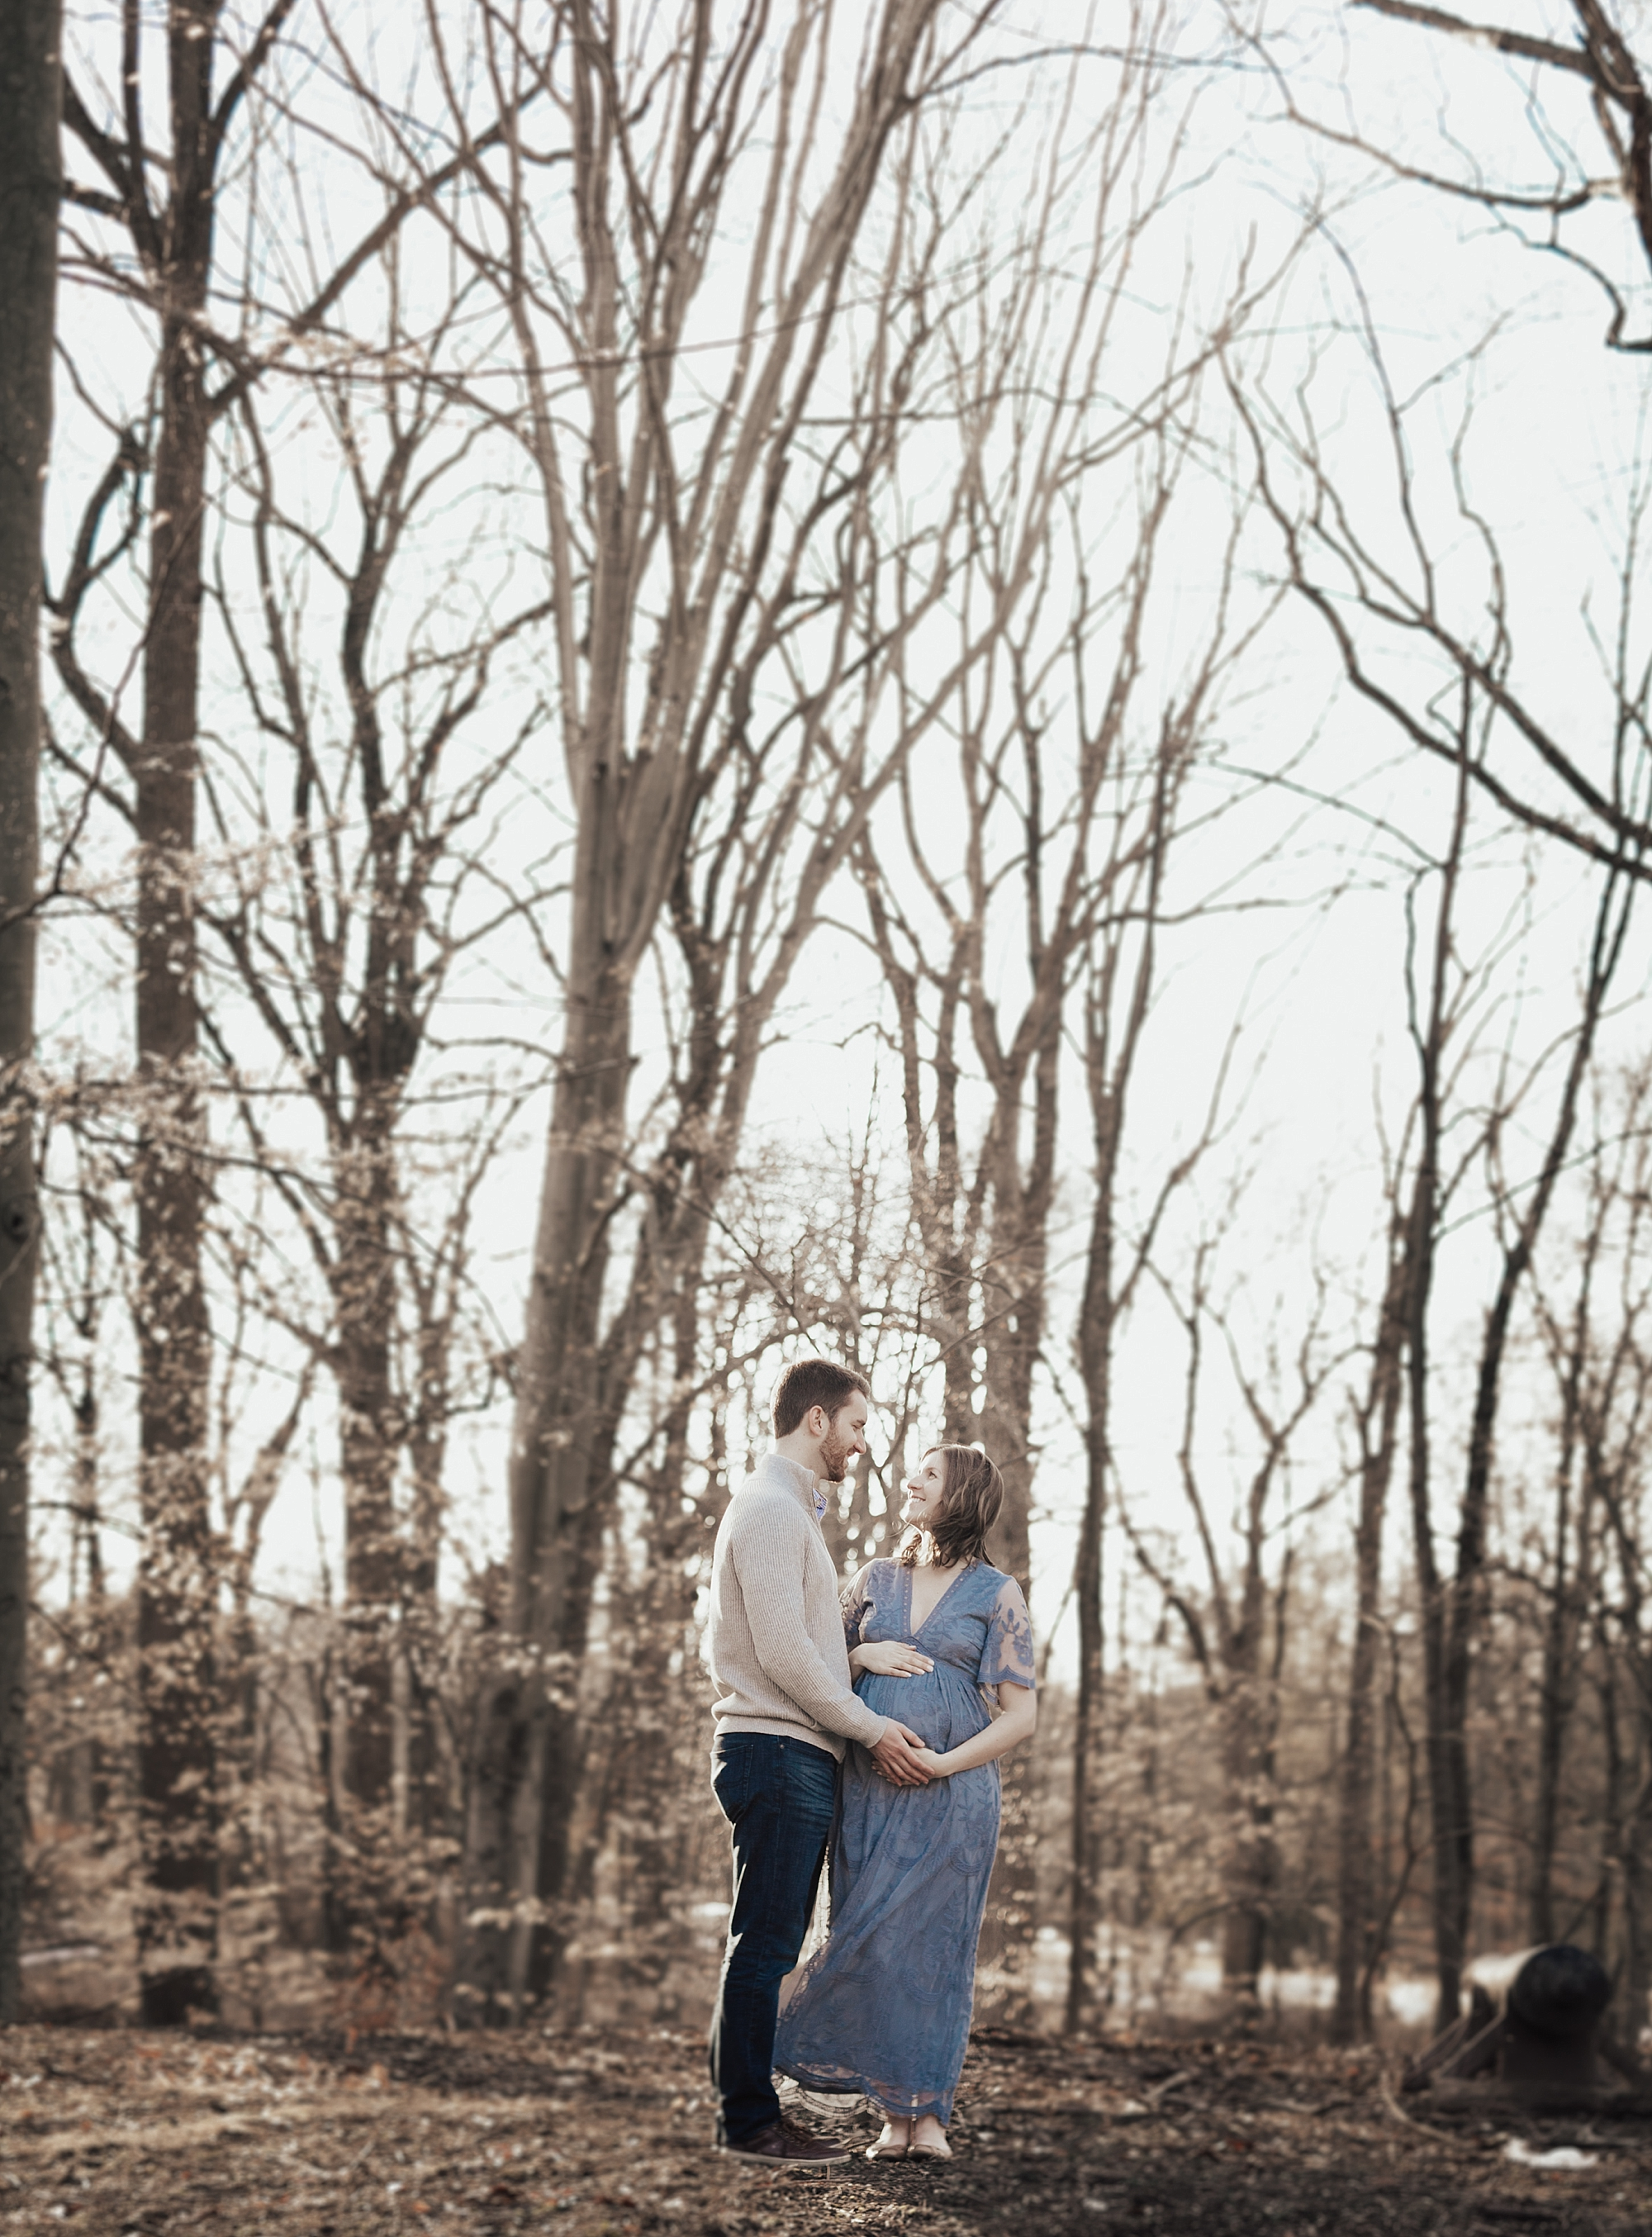 Joe_Mac_Creative_Maternity_Wedding_Engagements_Photography_Philadelphia_Valley_Forge__0034.jpg